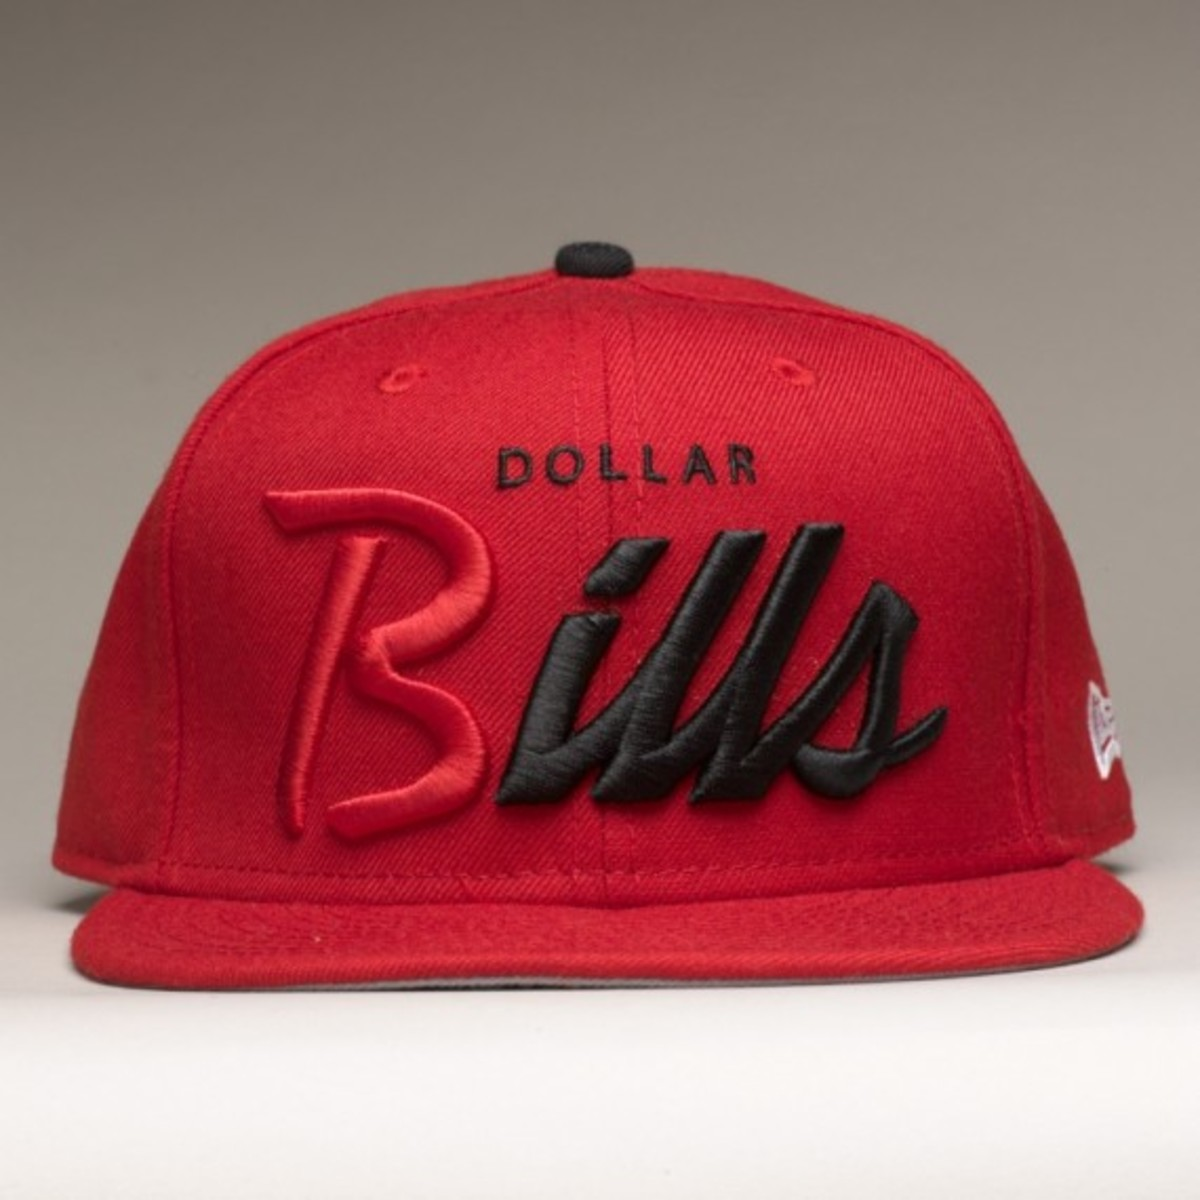 dollar-ills-red